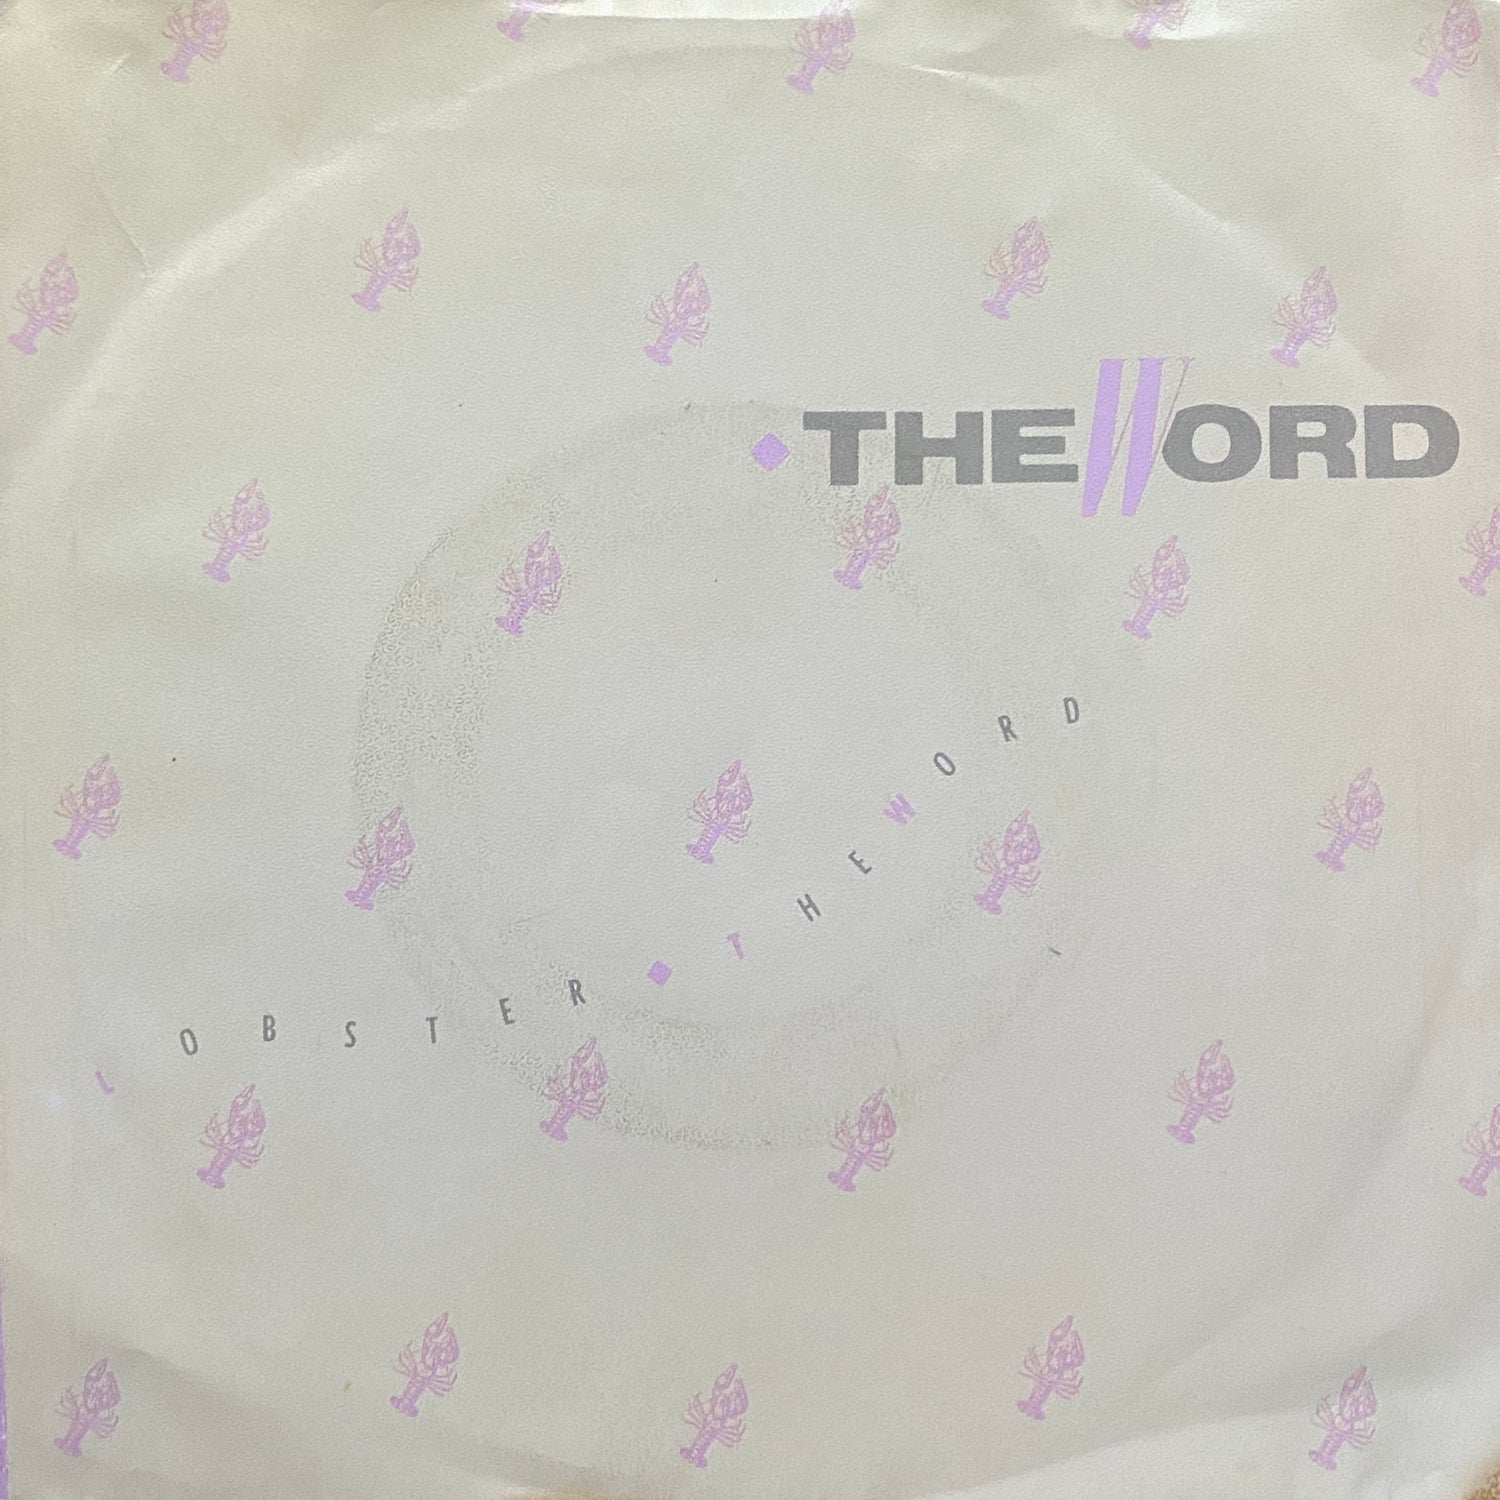 The Word – Lobster/The Word  (VG+/VG)